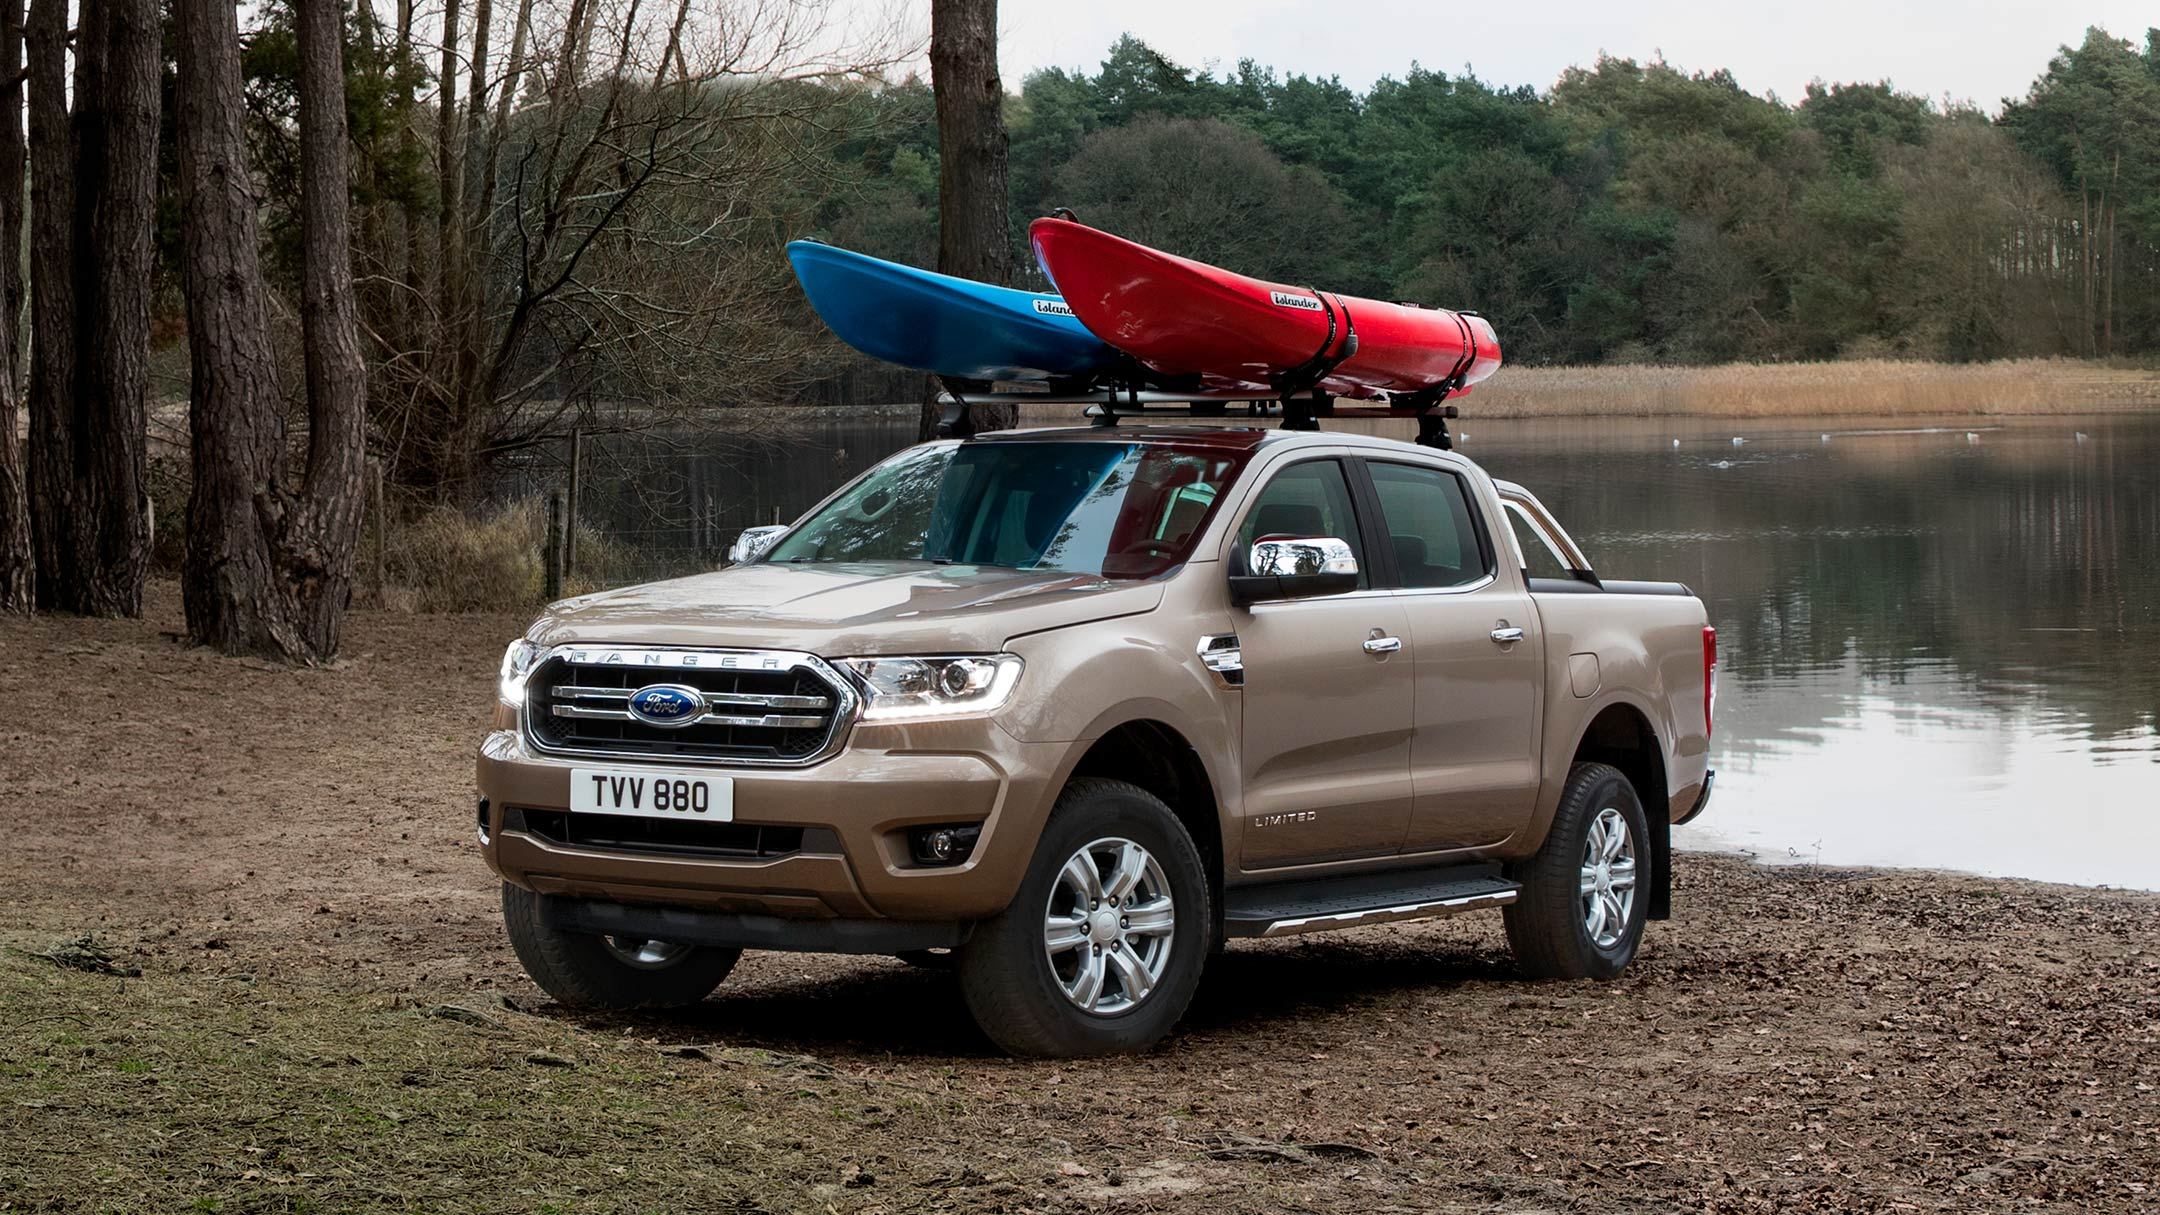 Silver Ford Ranger Wildtrak loaded with canoes parked near lake